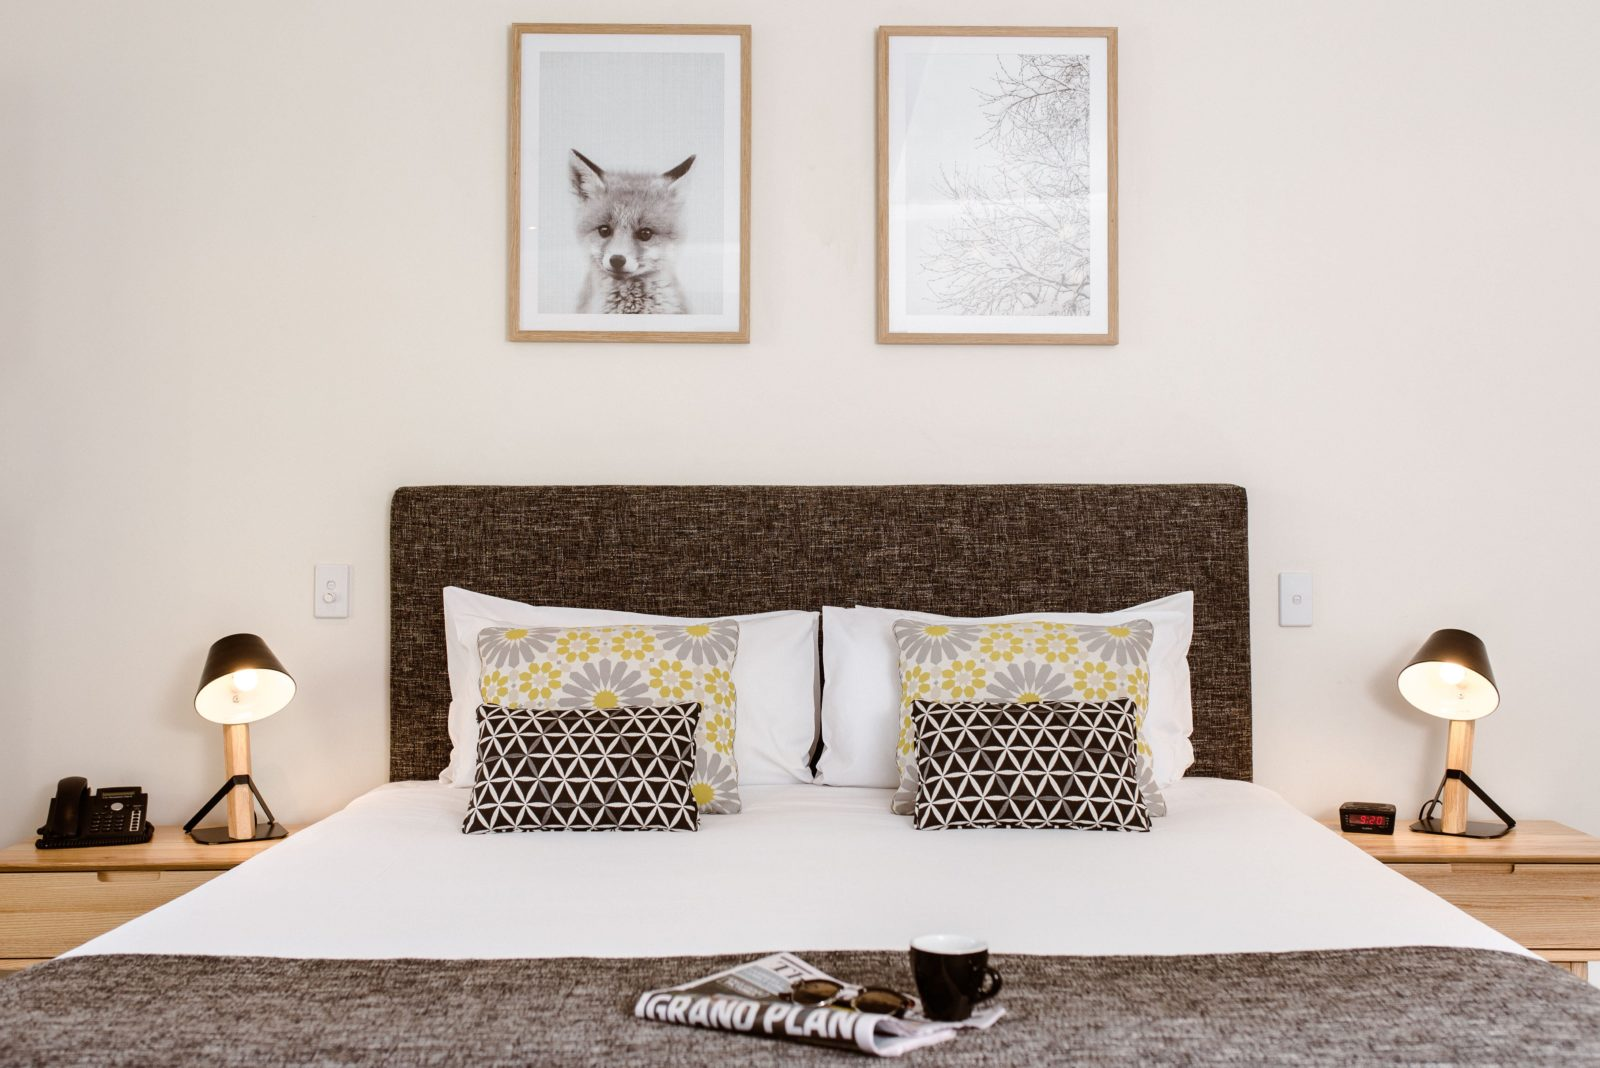 A king-sized bed with Scandinavian-style furnishings